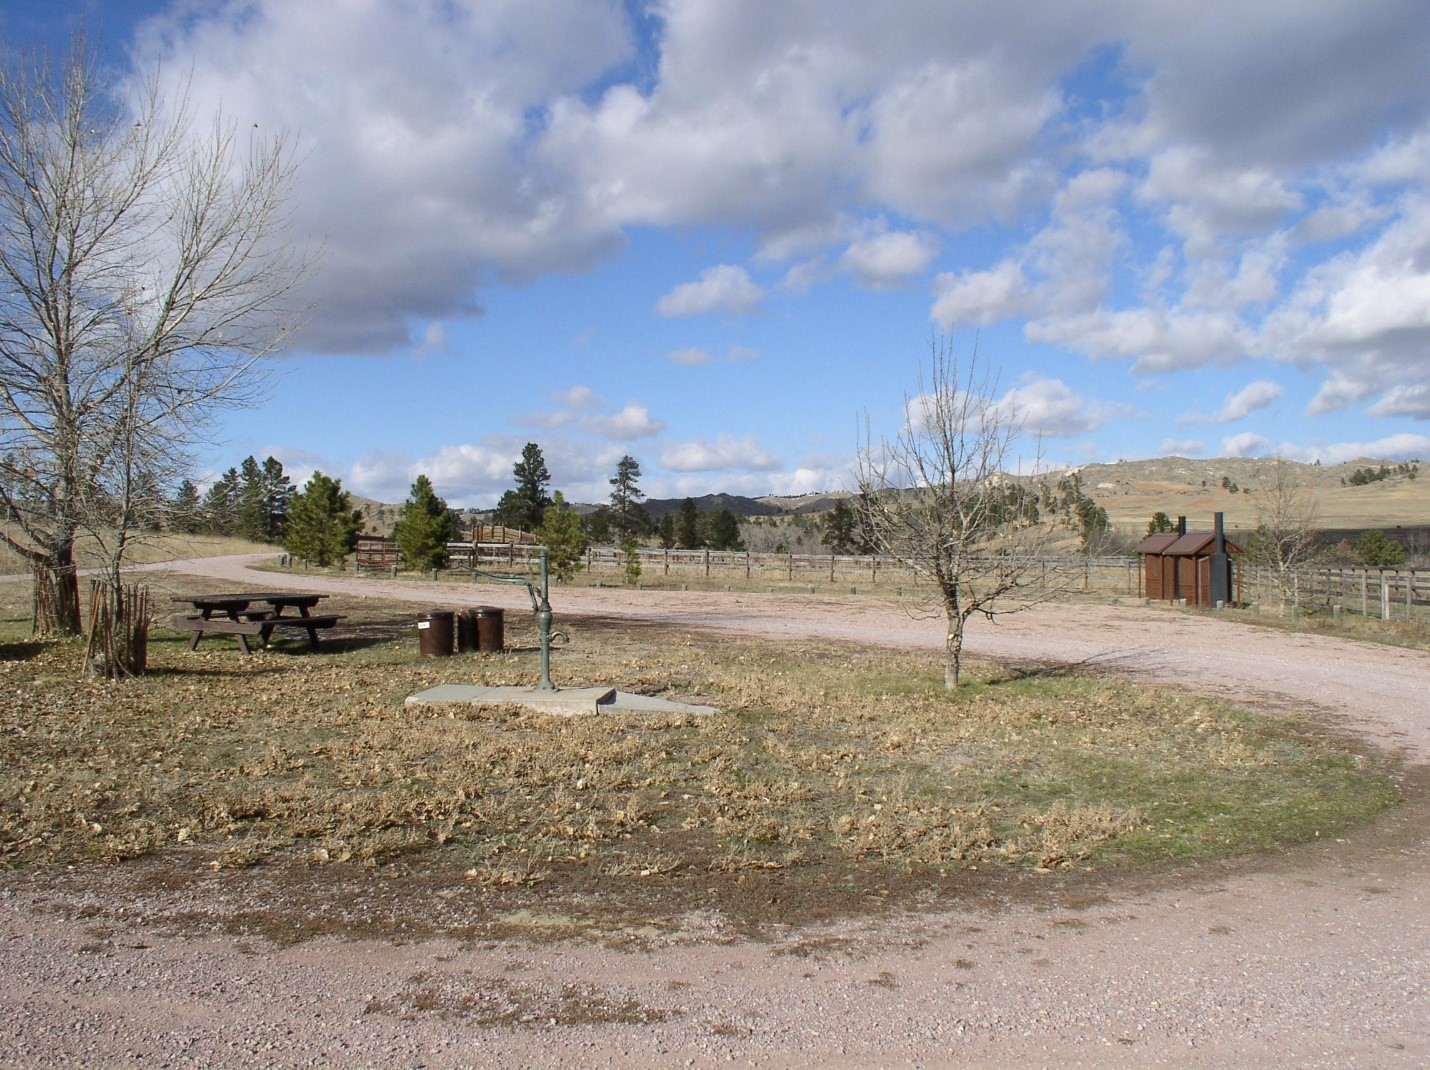 Picnic tables and horse corrals in a grassy open camping area